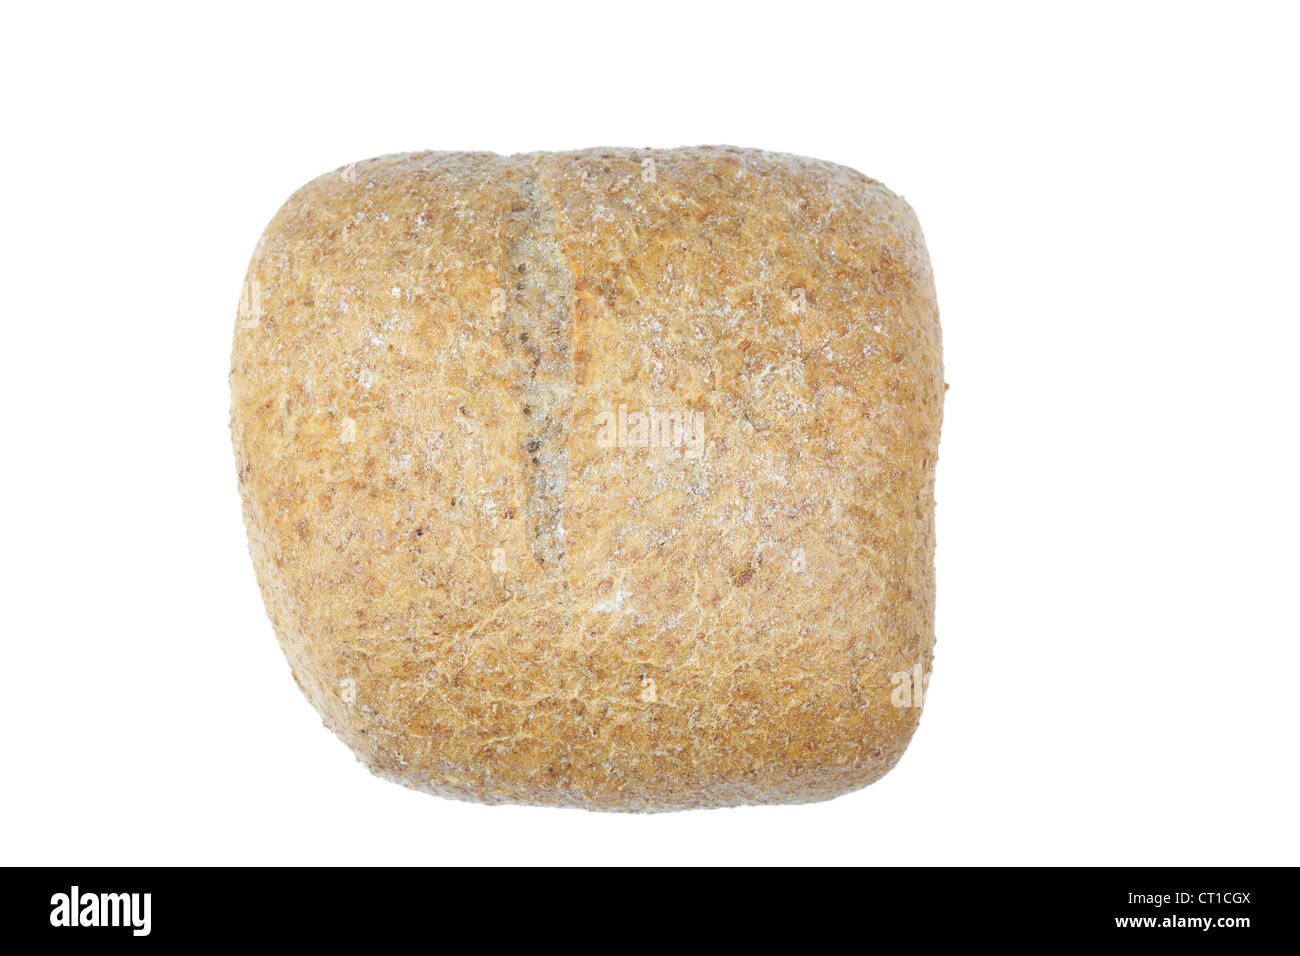 Wholemeal rustic roll on a white background - Stock Image